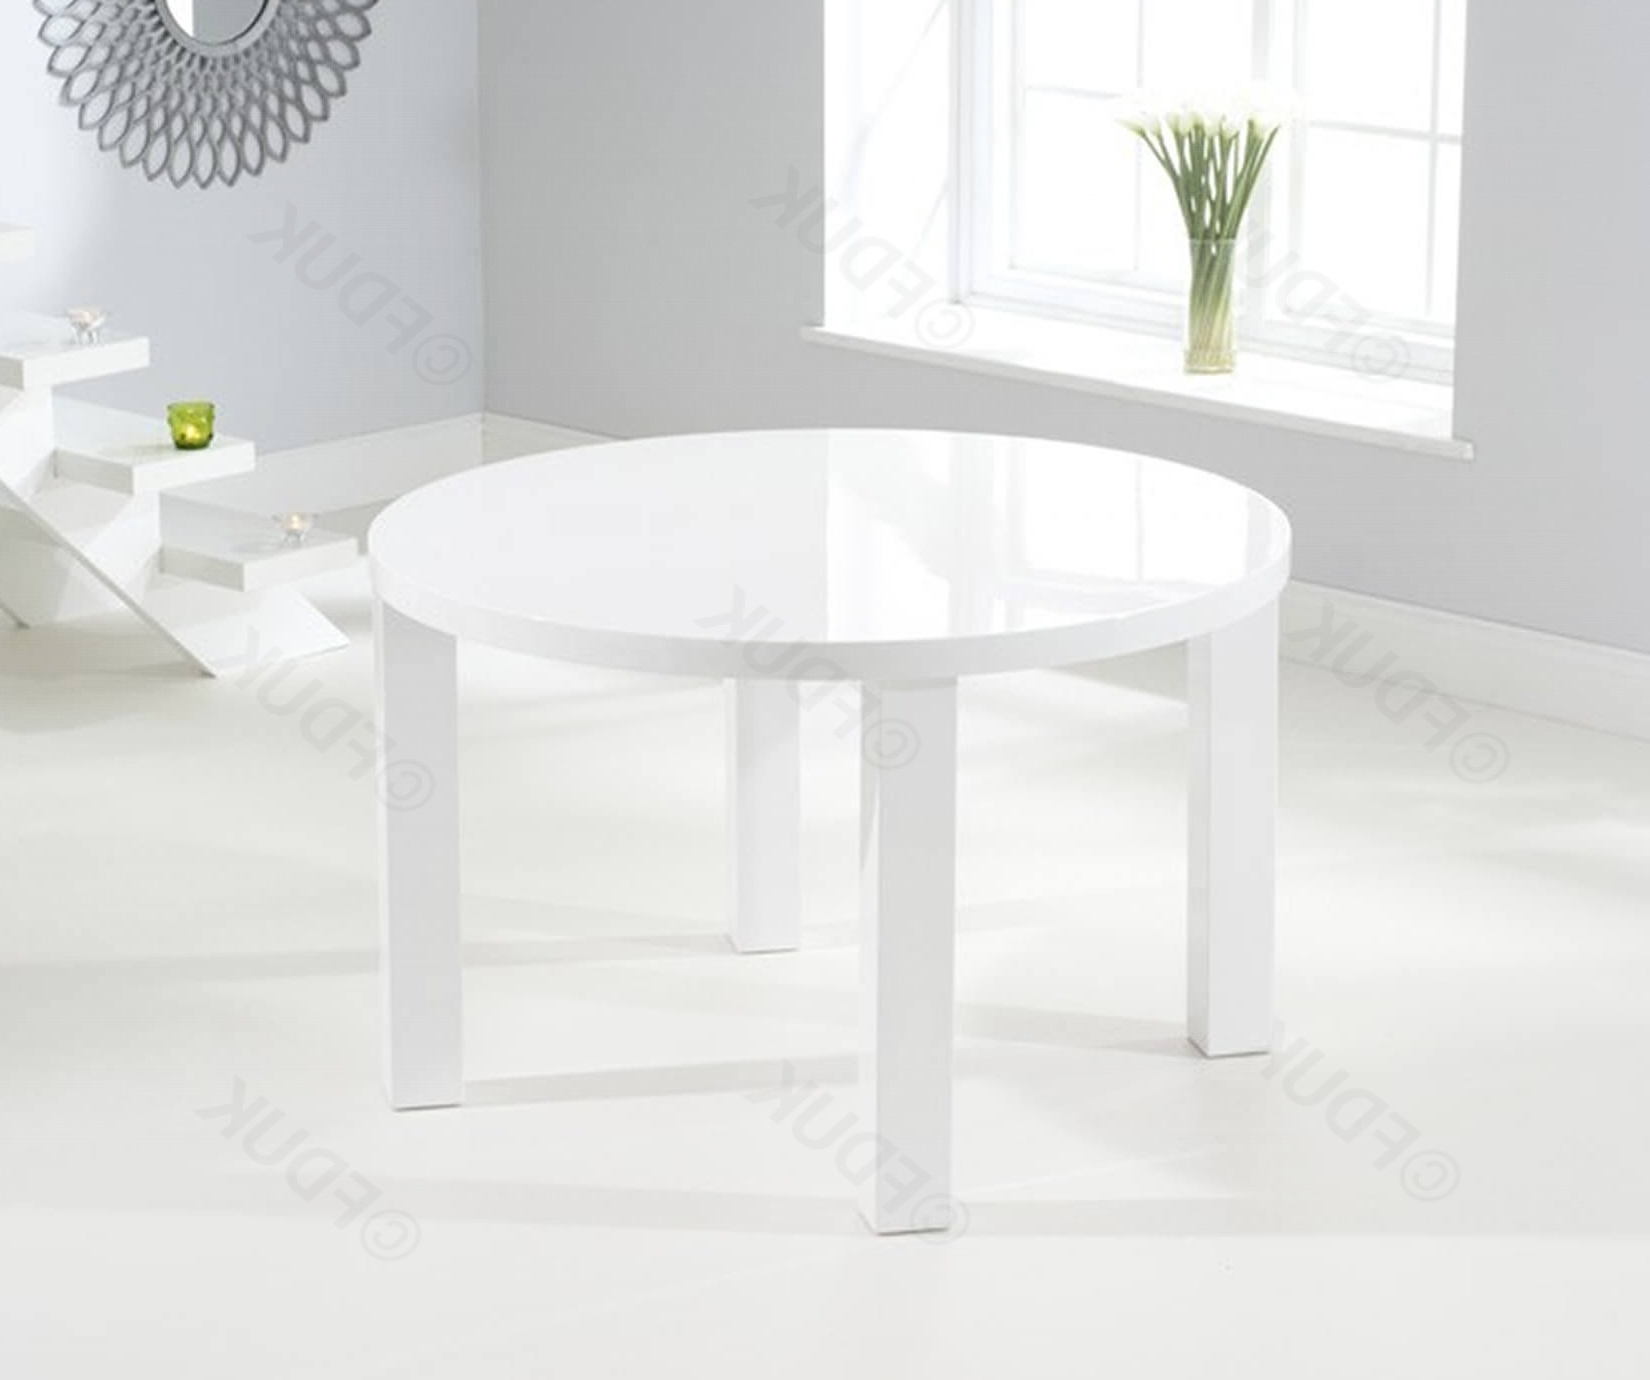 Ava Medium Round High Gloss Dining Table Only Pertaining To Round High Gloss Dining Tables (Gallery 15 of 25)